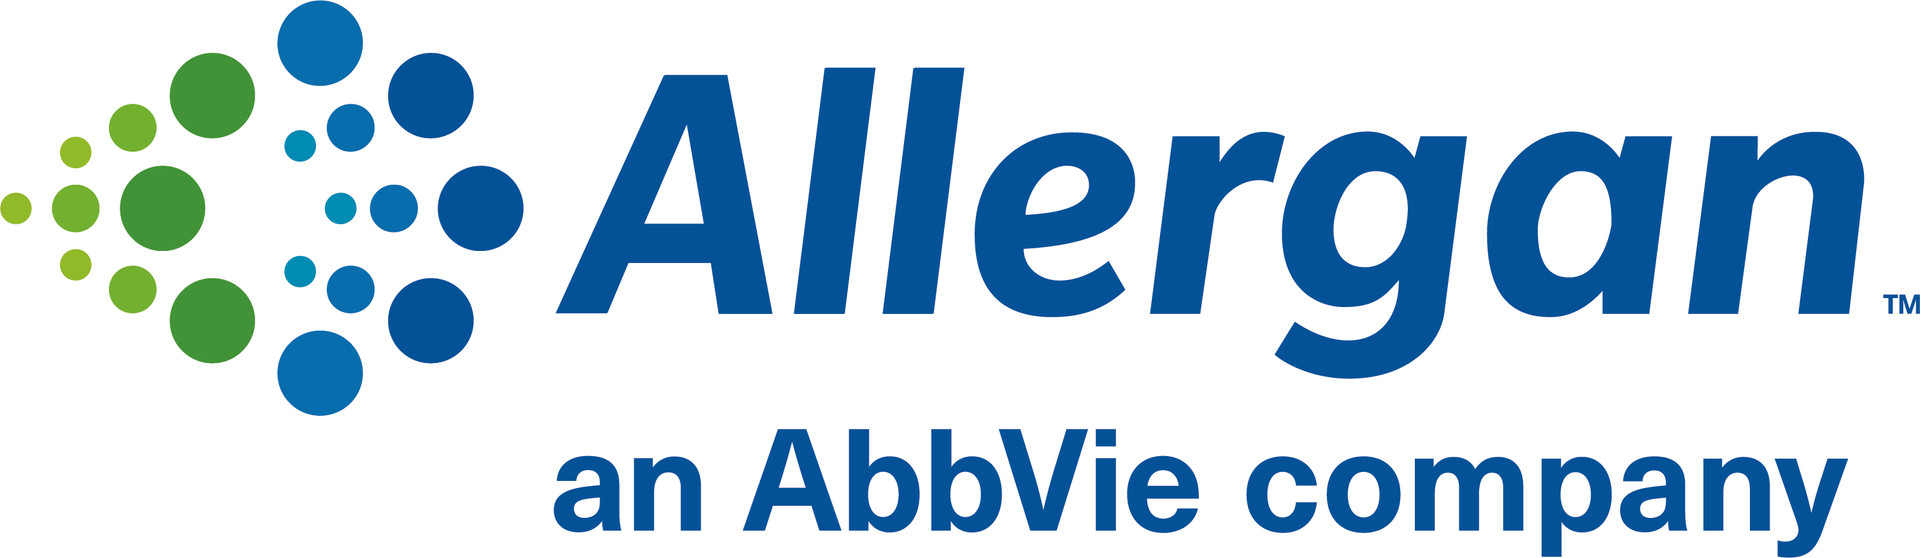 Allergan_logo_Primary_CMYK.jpg